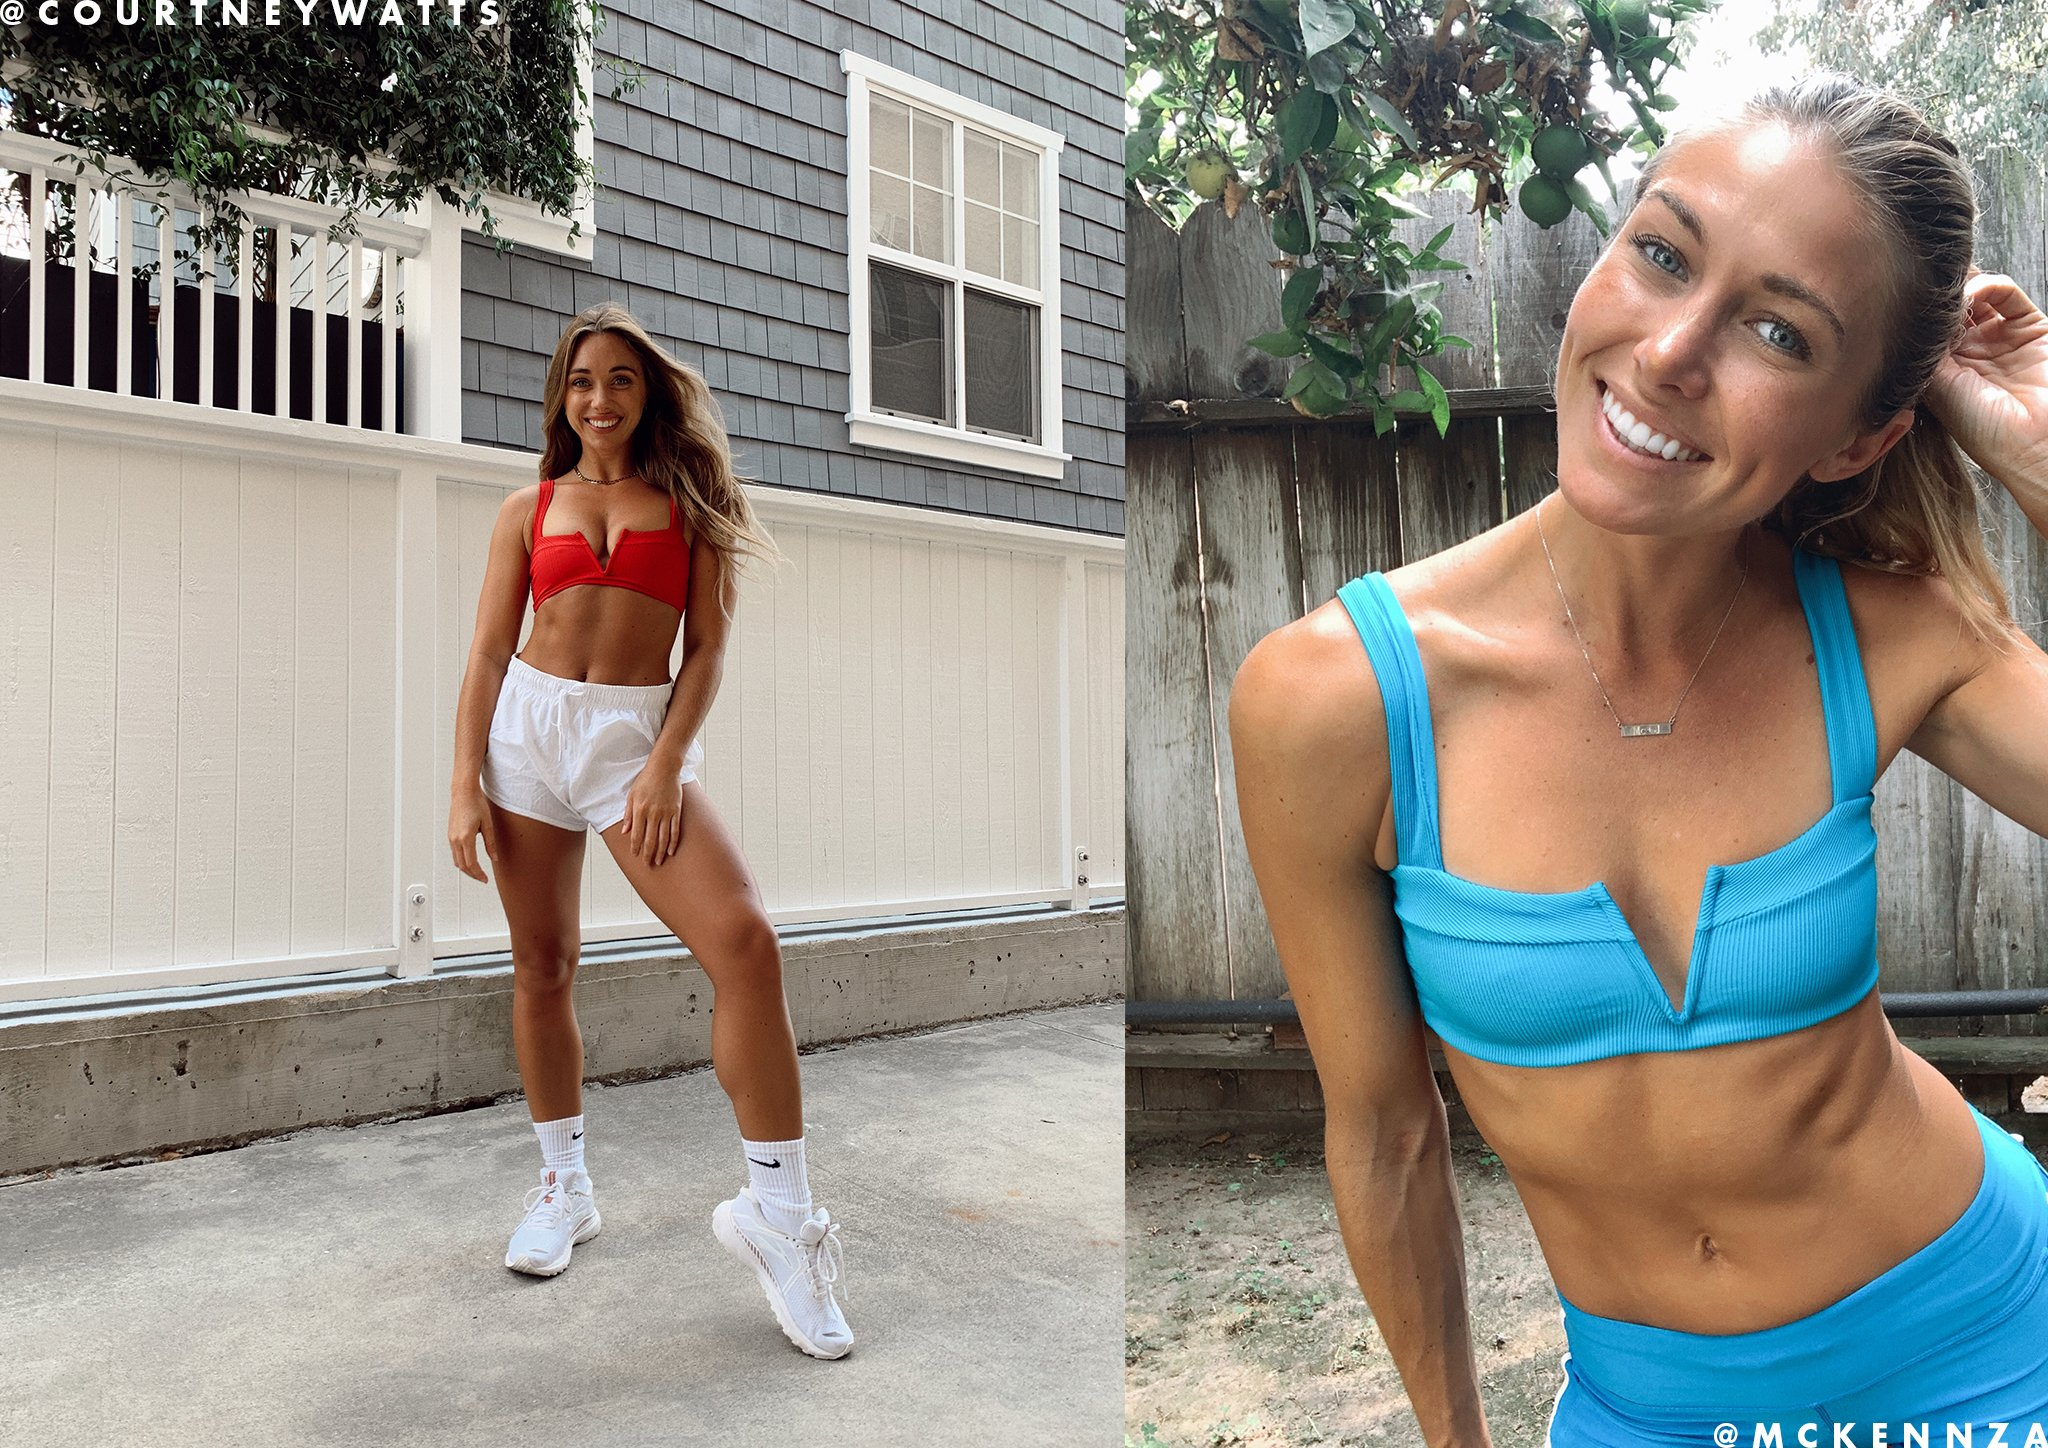 L*Space ribbed Lee Lee bikini top worn as a workout top